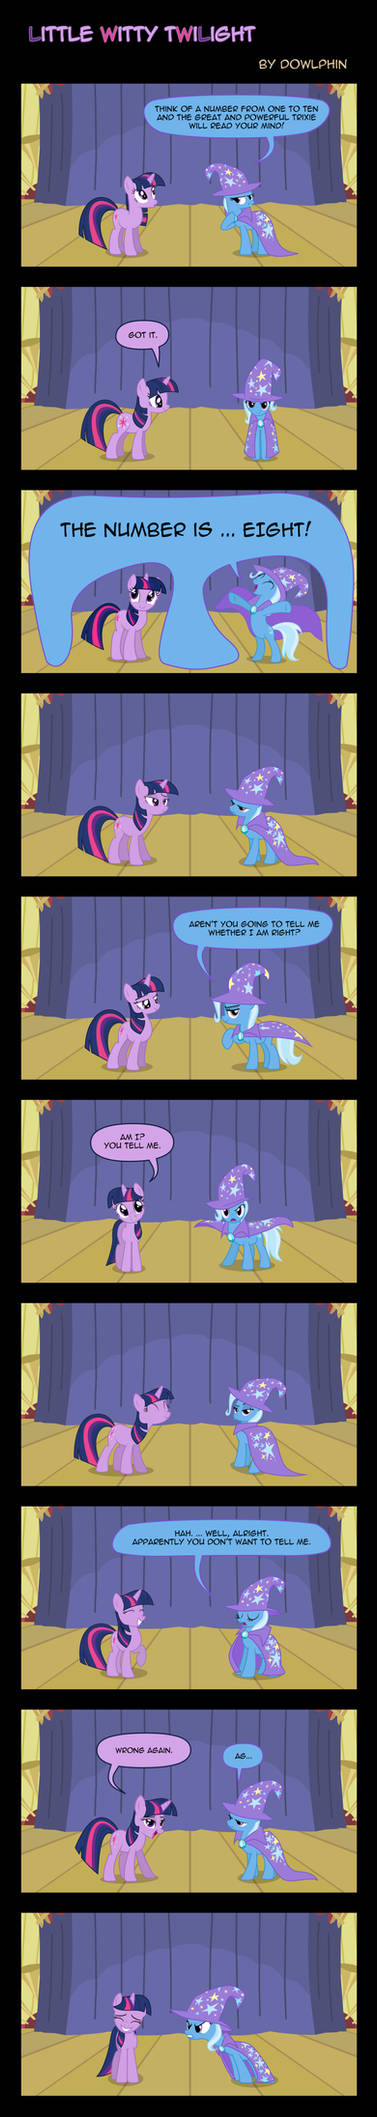 Little Witty Twilight